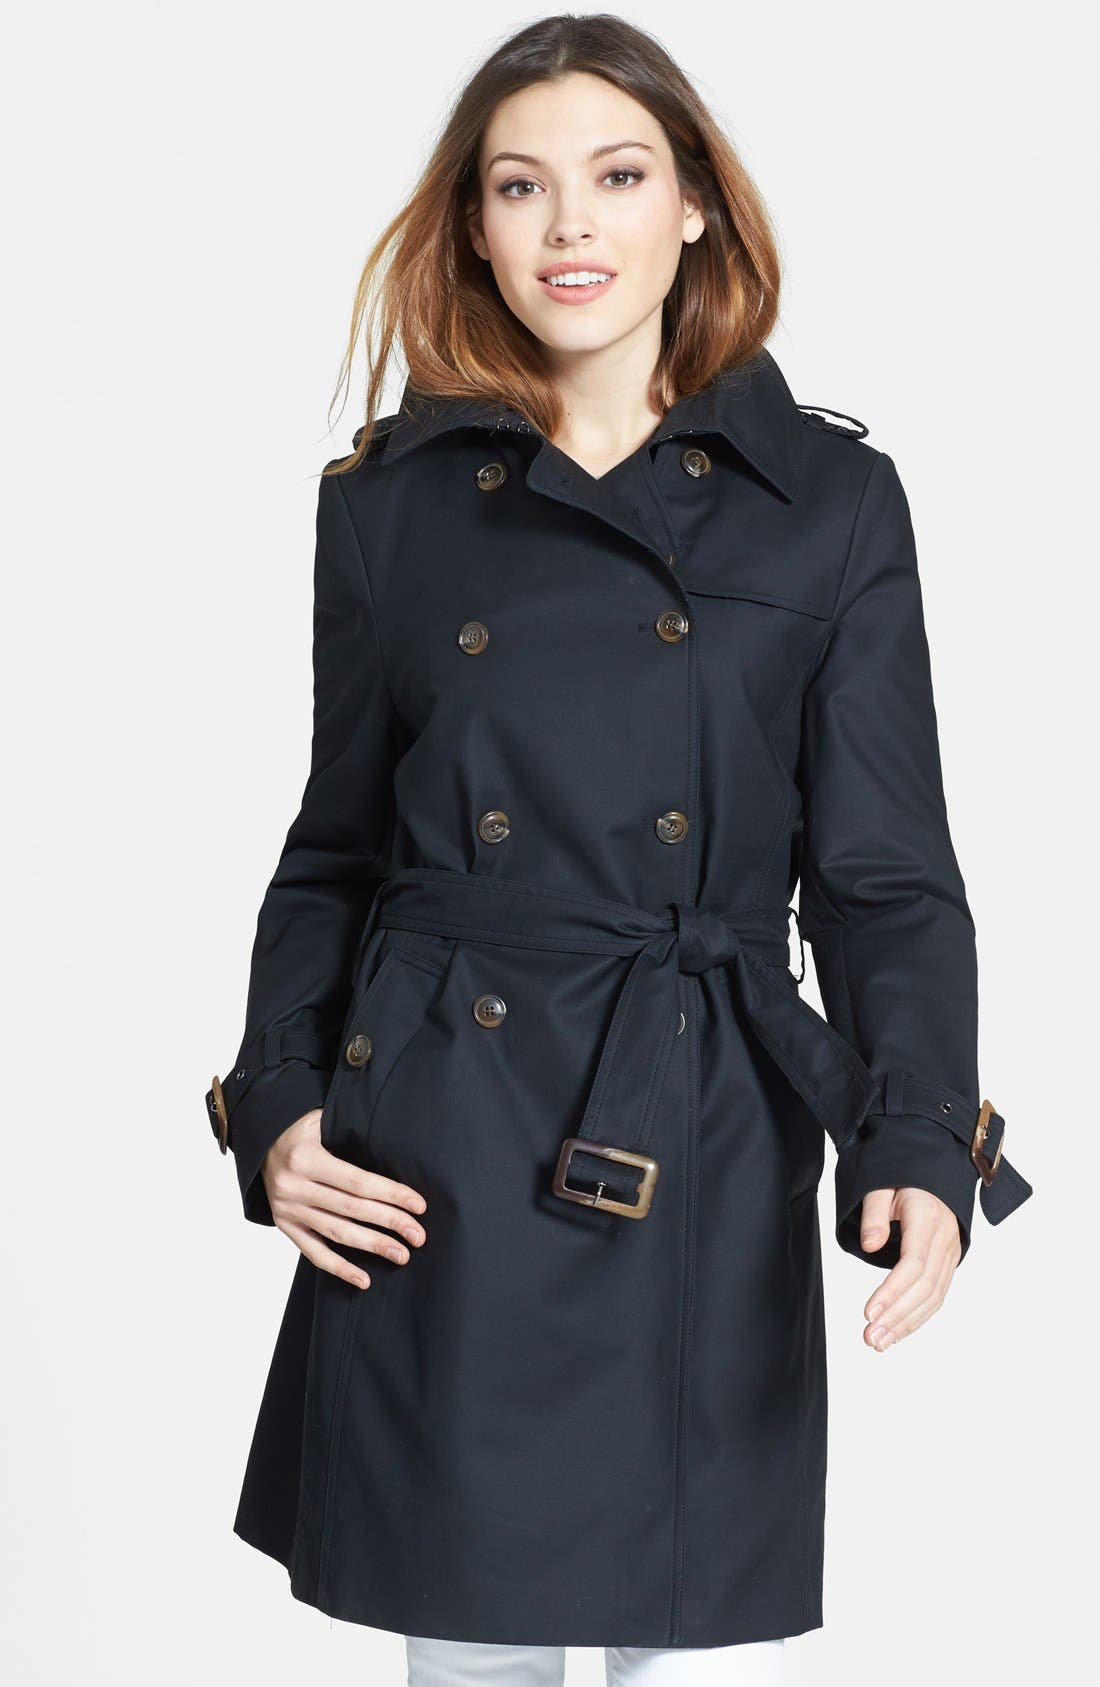 Alternate Image 1 Selected - Trina Turk Double Breasted Trench Coat